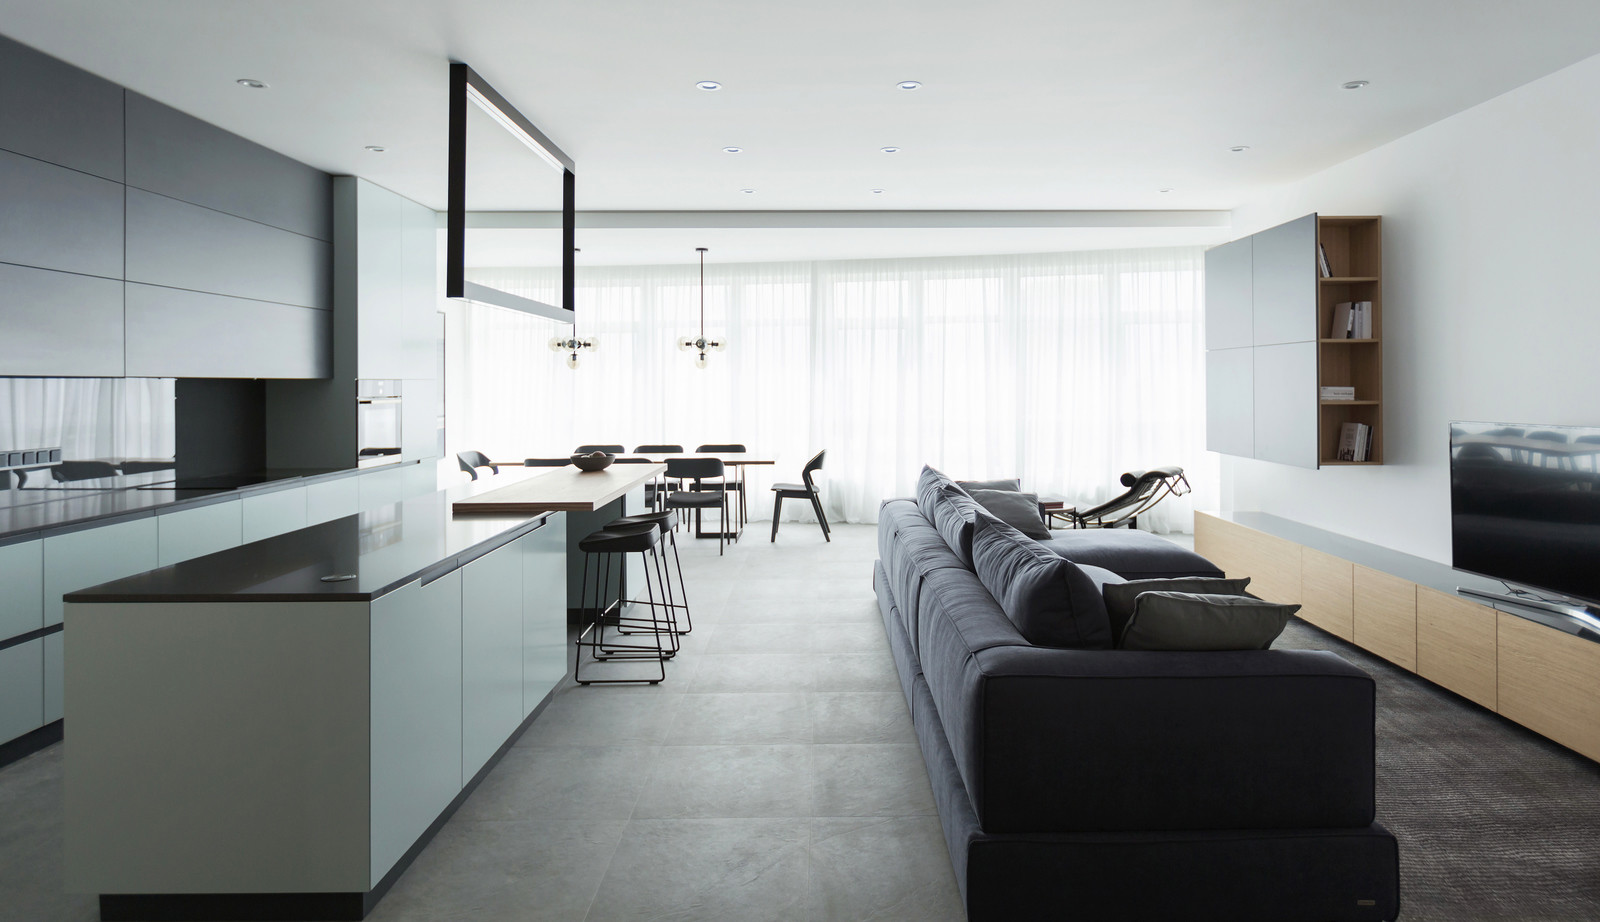 Apartment Beautifully Decorated By The Architectural Studio Lugerin Architects